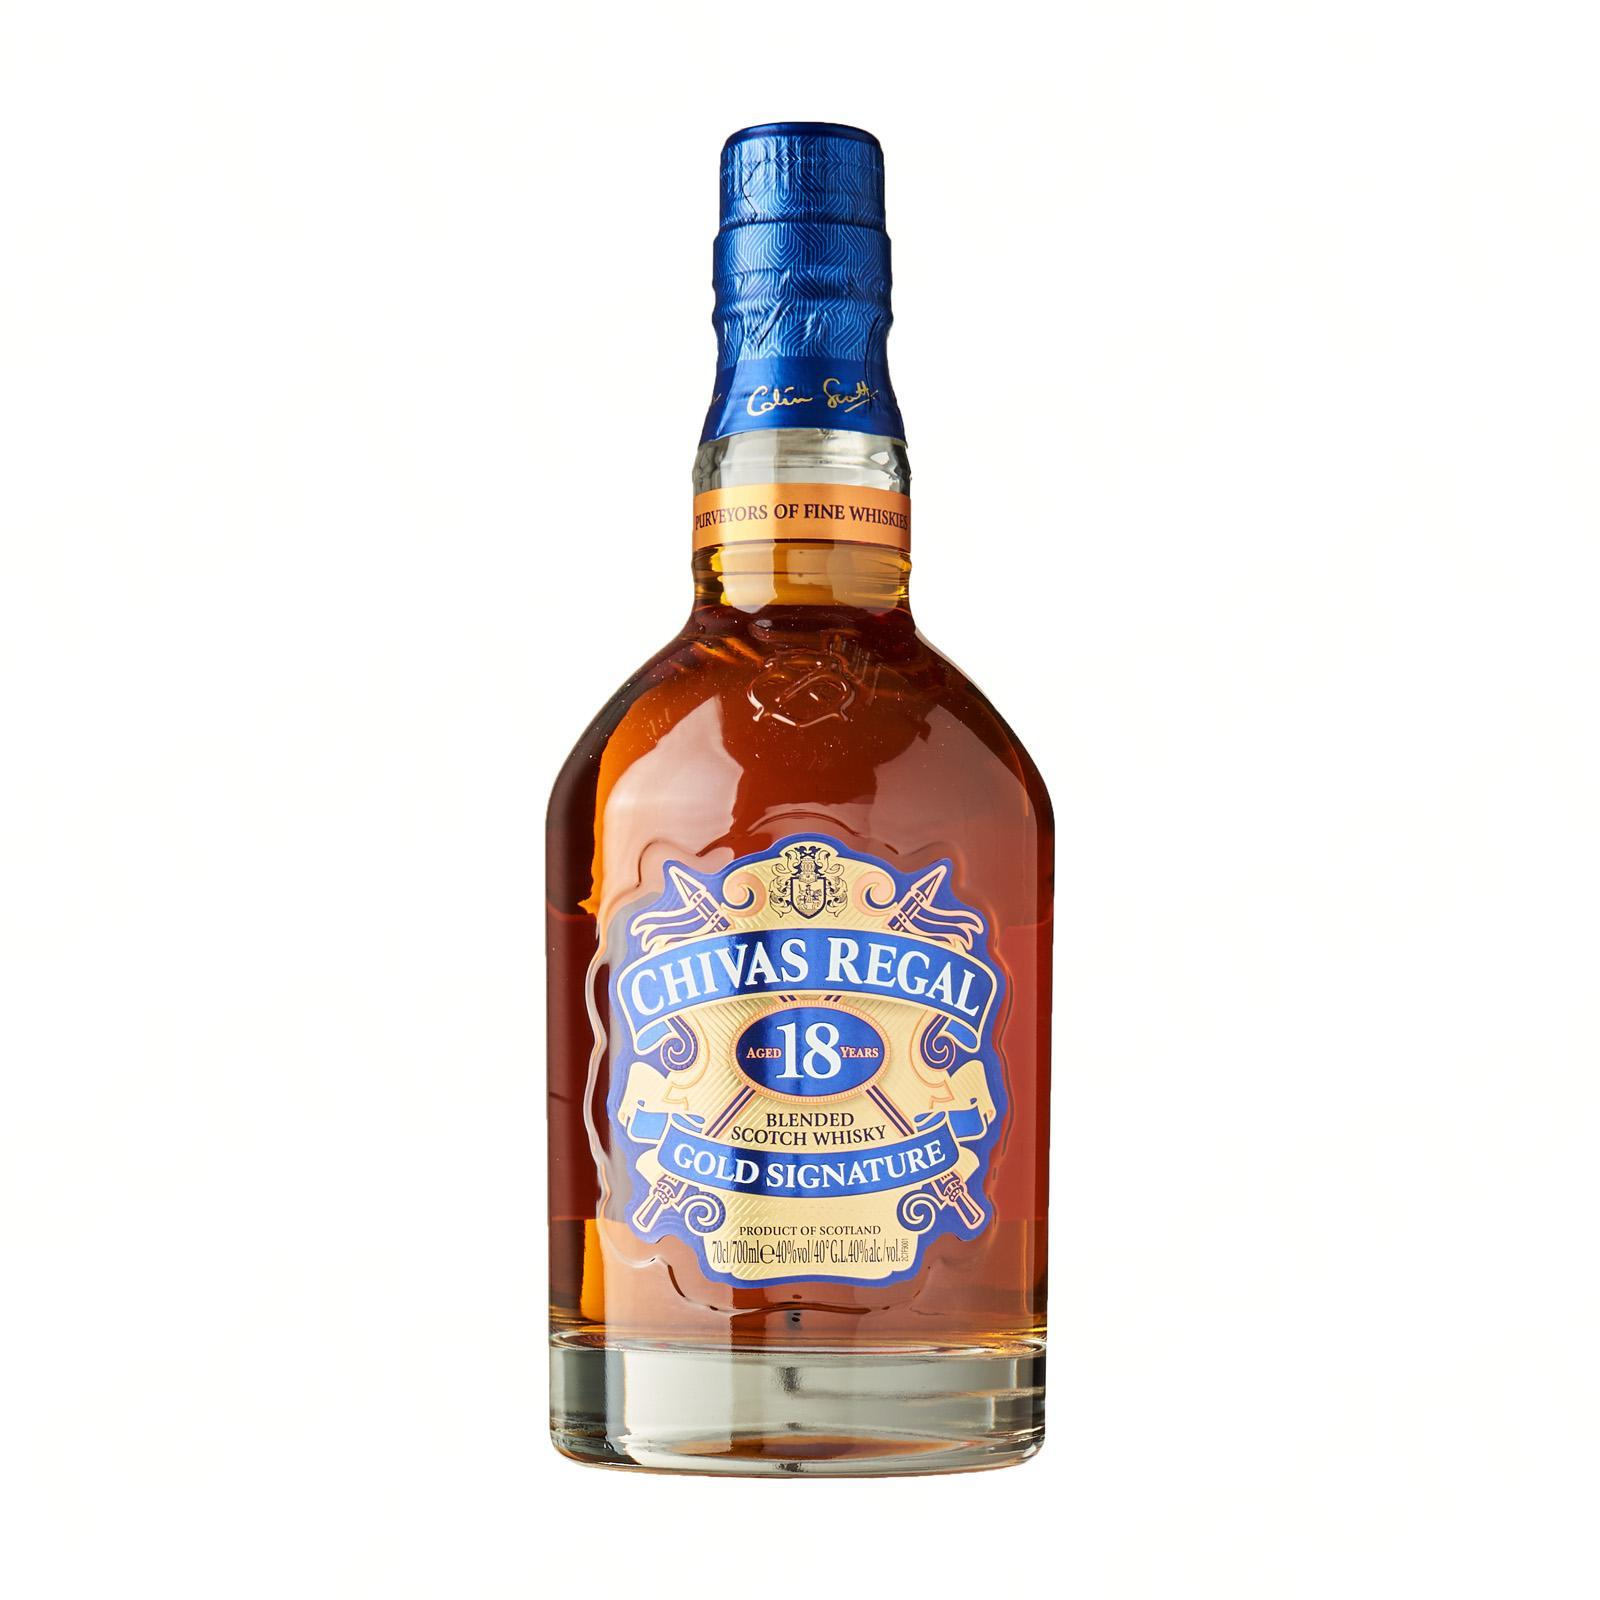 CHIVAS REGAL Blended Scotch Whisky 18 Years 700ml